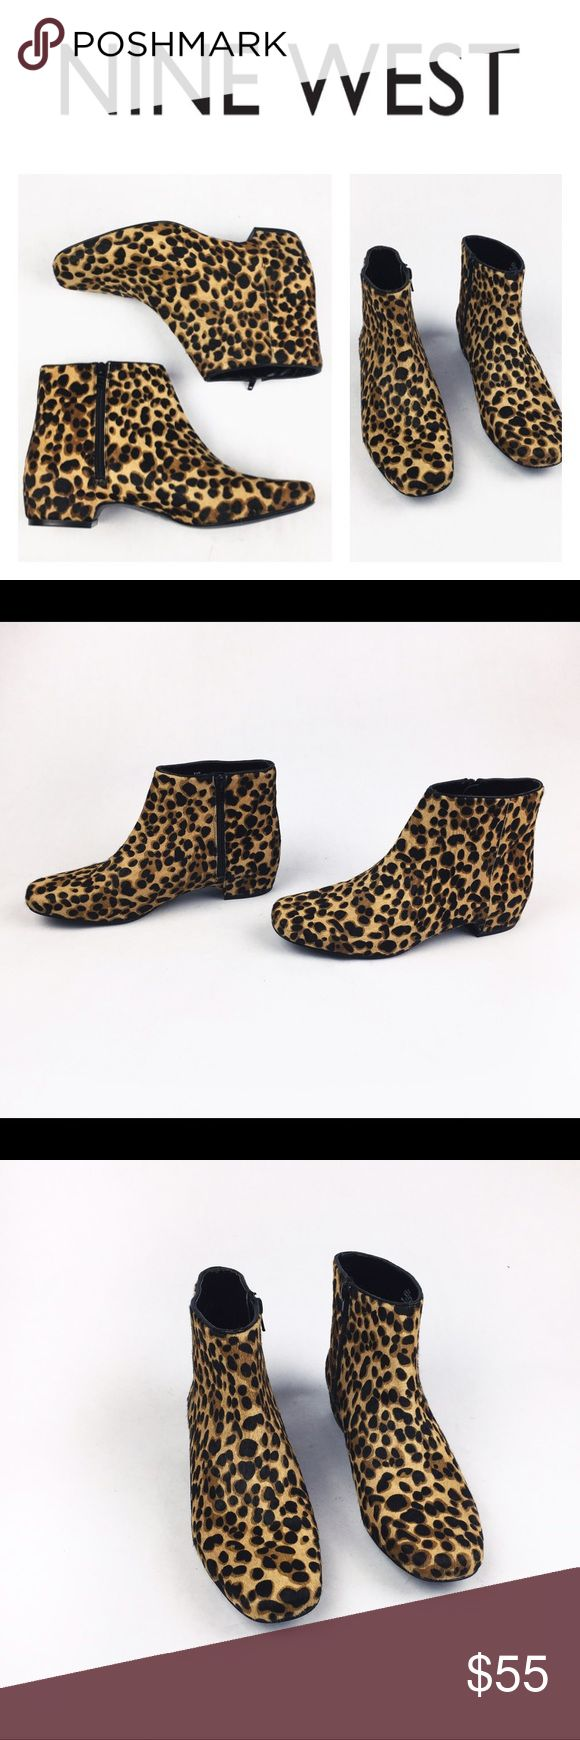 NINE WEST CHEETA REAL COW FUR ANKLE BOOTS SZ9.5 Divine and fierce Nine West cheetah ankle booties made with leather and real cow fur in size 9.5. These boots are even prettier and edgier in person! If you want to make a statement, these are 4u! Brand new, never worn! They come without a box so might have some handling signs (couldn't find any) Love them? Make an offer! Questions? Ask me 🌹💖 Nine West Shoes Ankle Boots & Booties